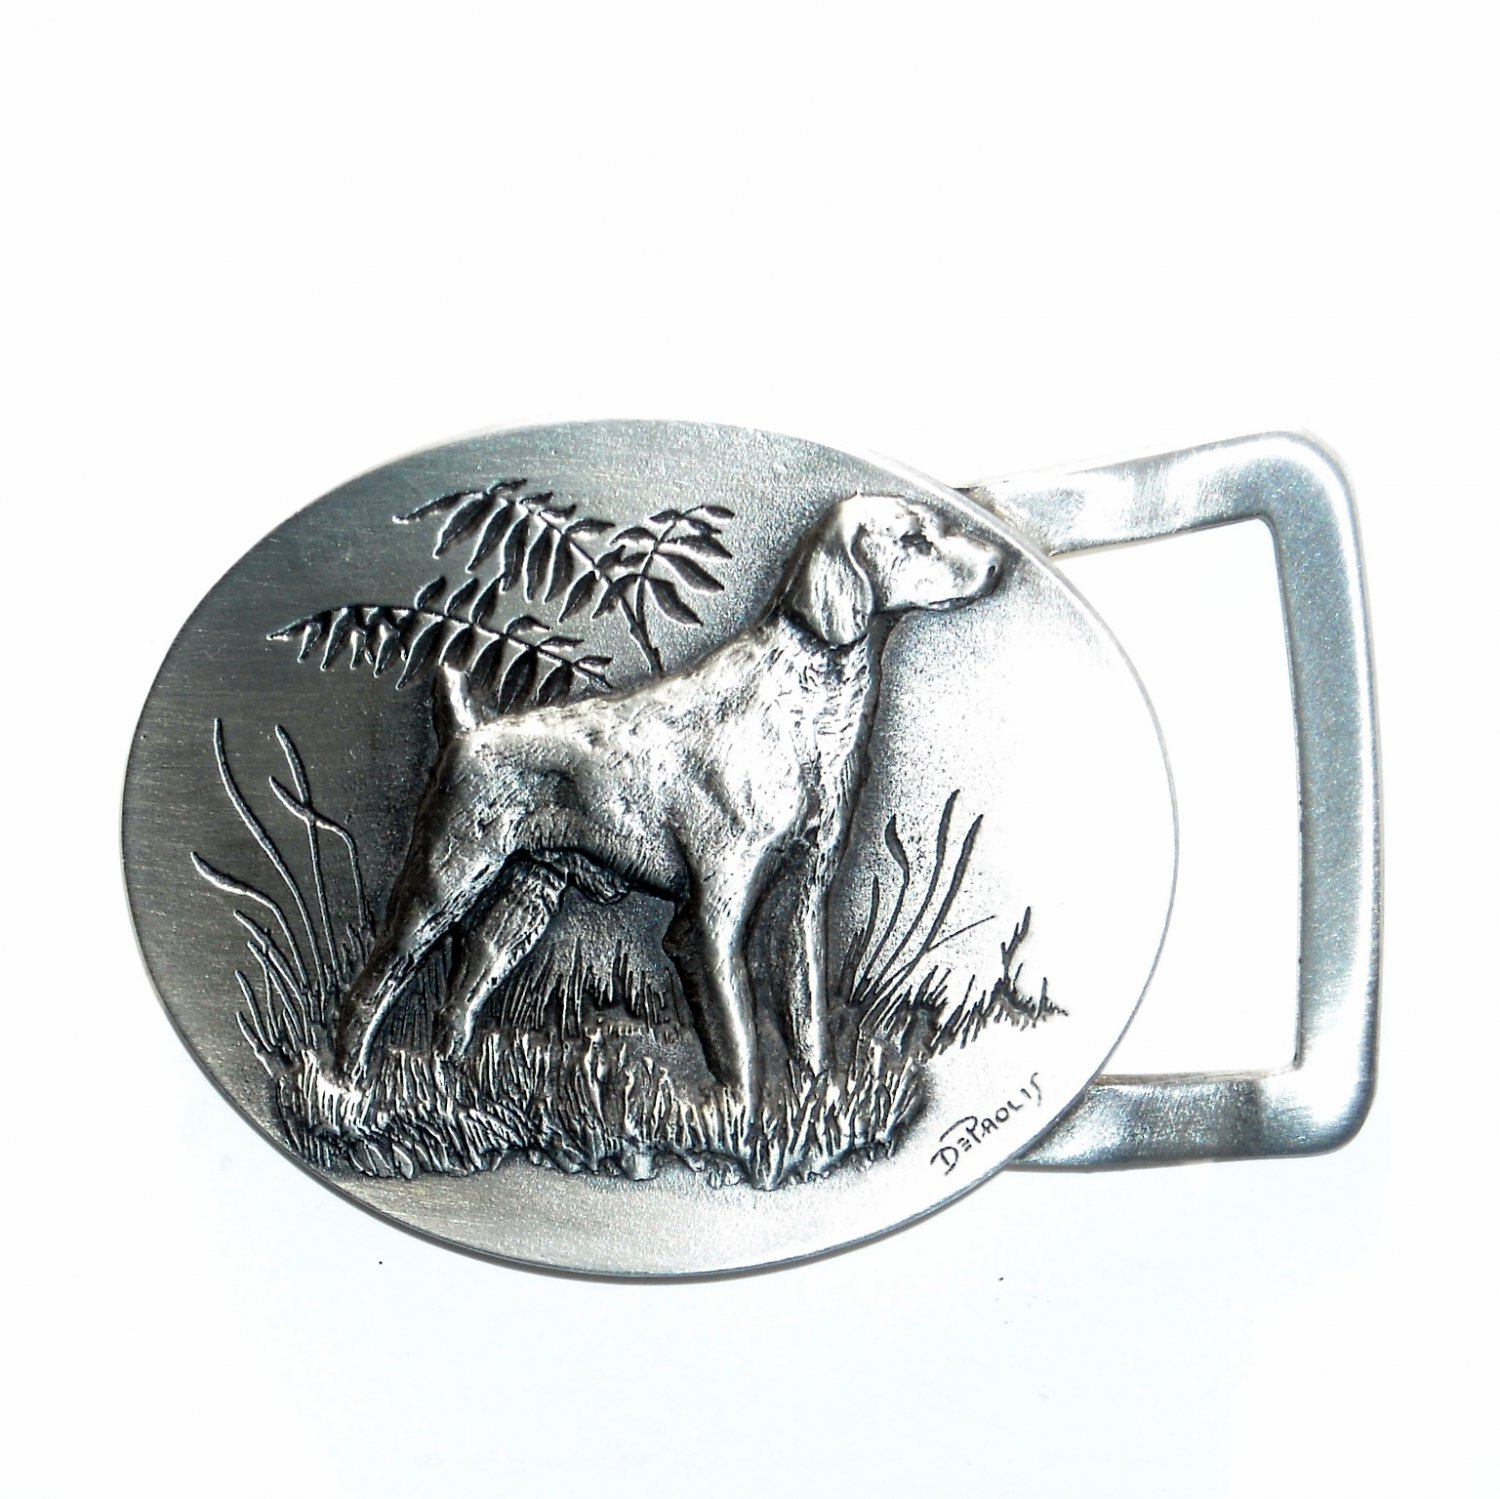 Setter Hunting Dog 3D Old Forge Metals Handcrafted Solid Pewter Belt Buckle